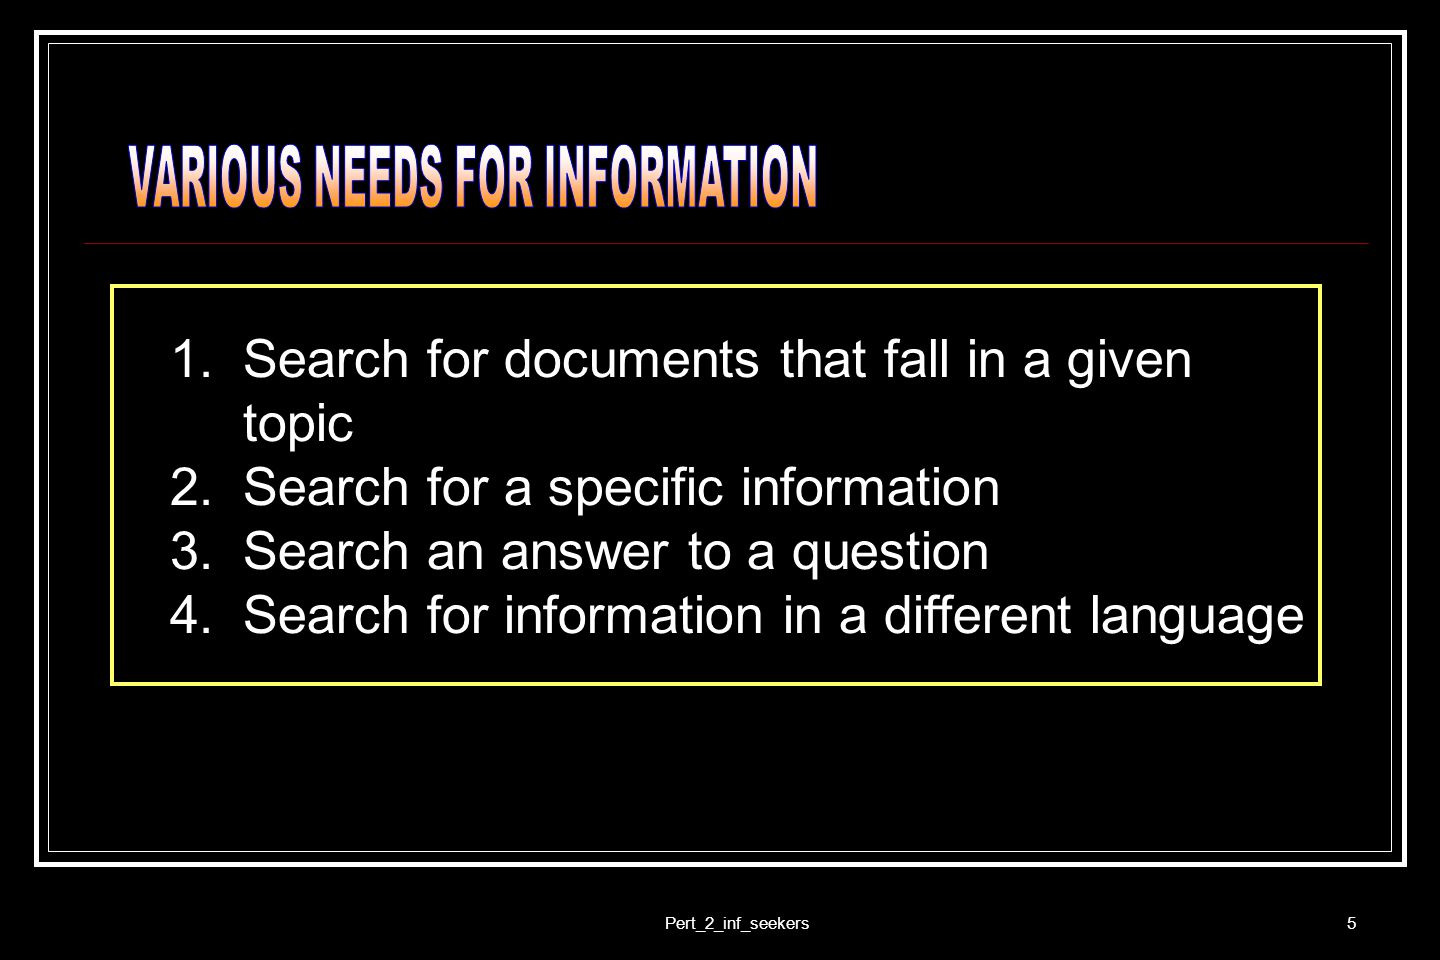 VARIOUS NEEDS FOR INFORMATION